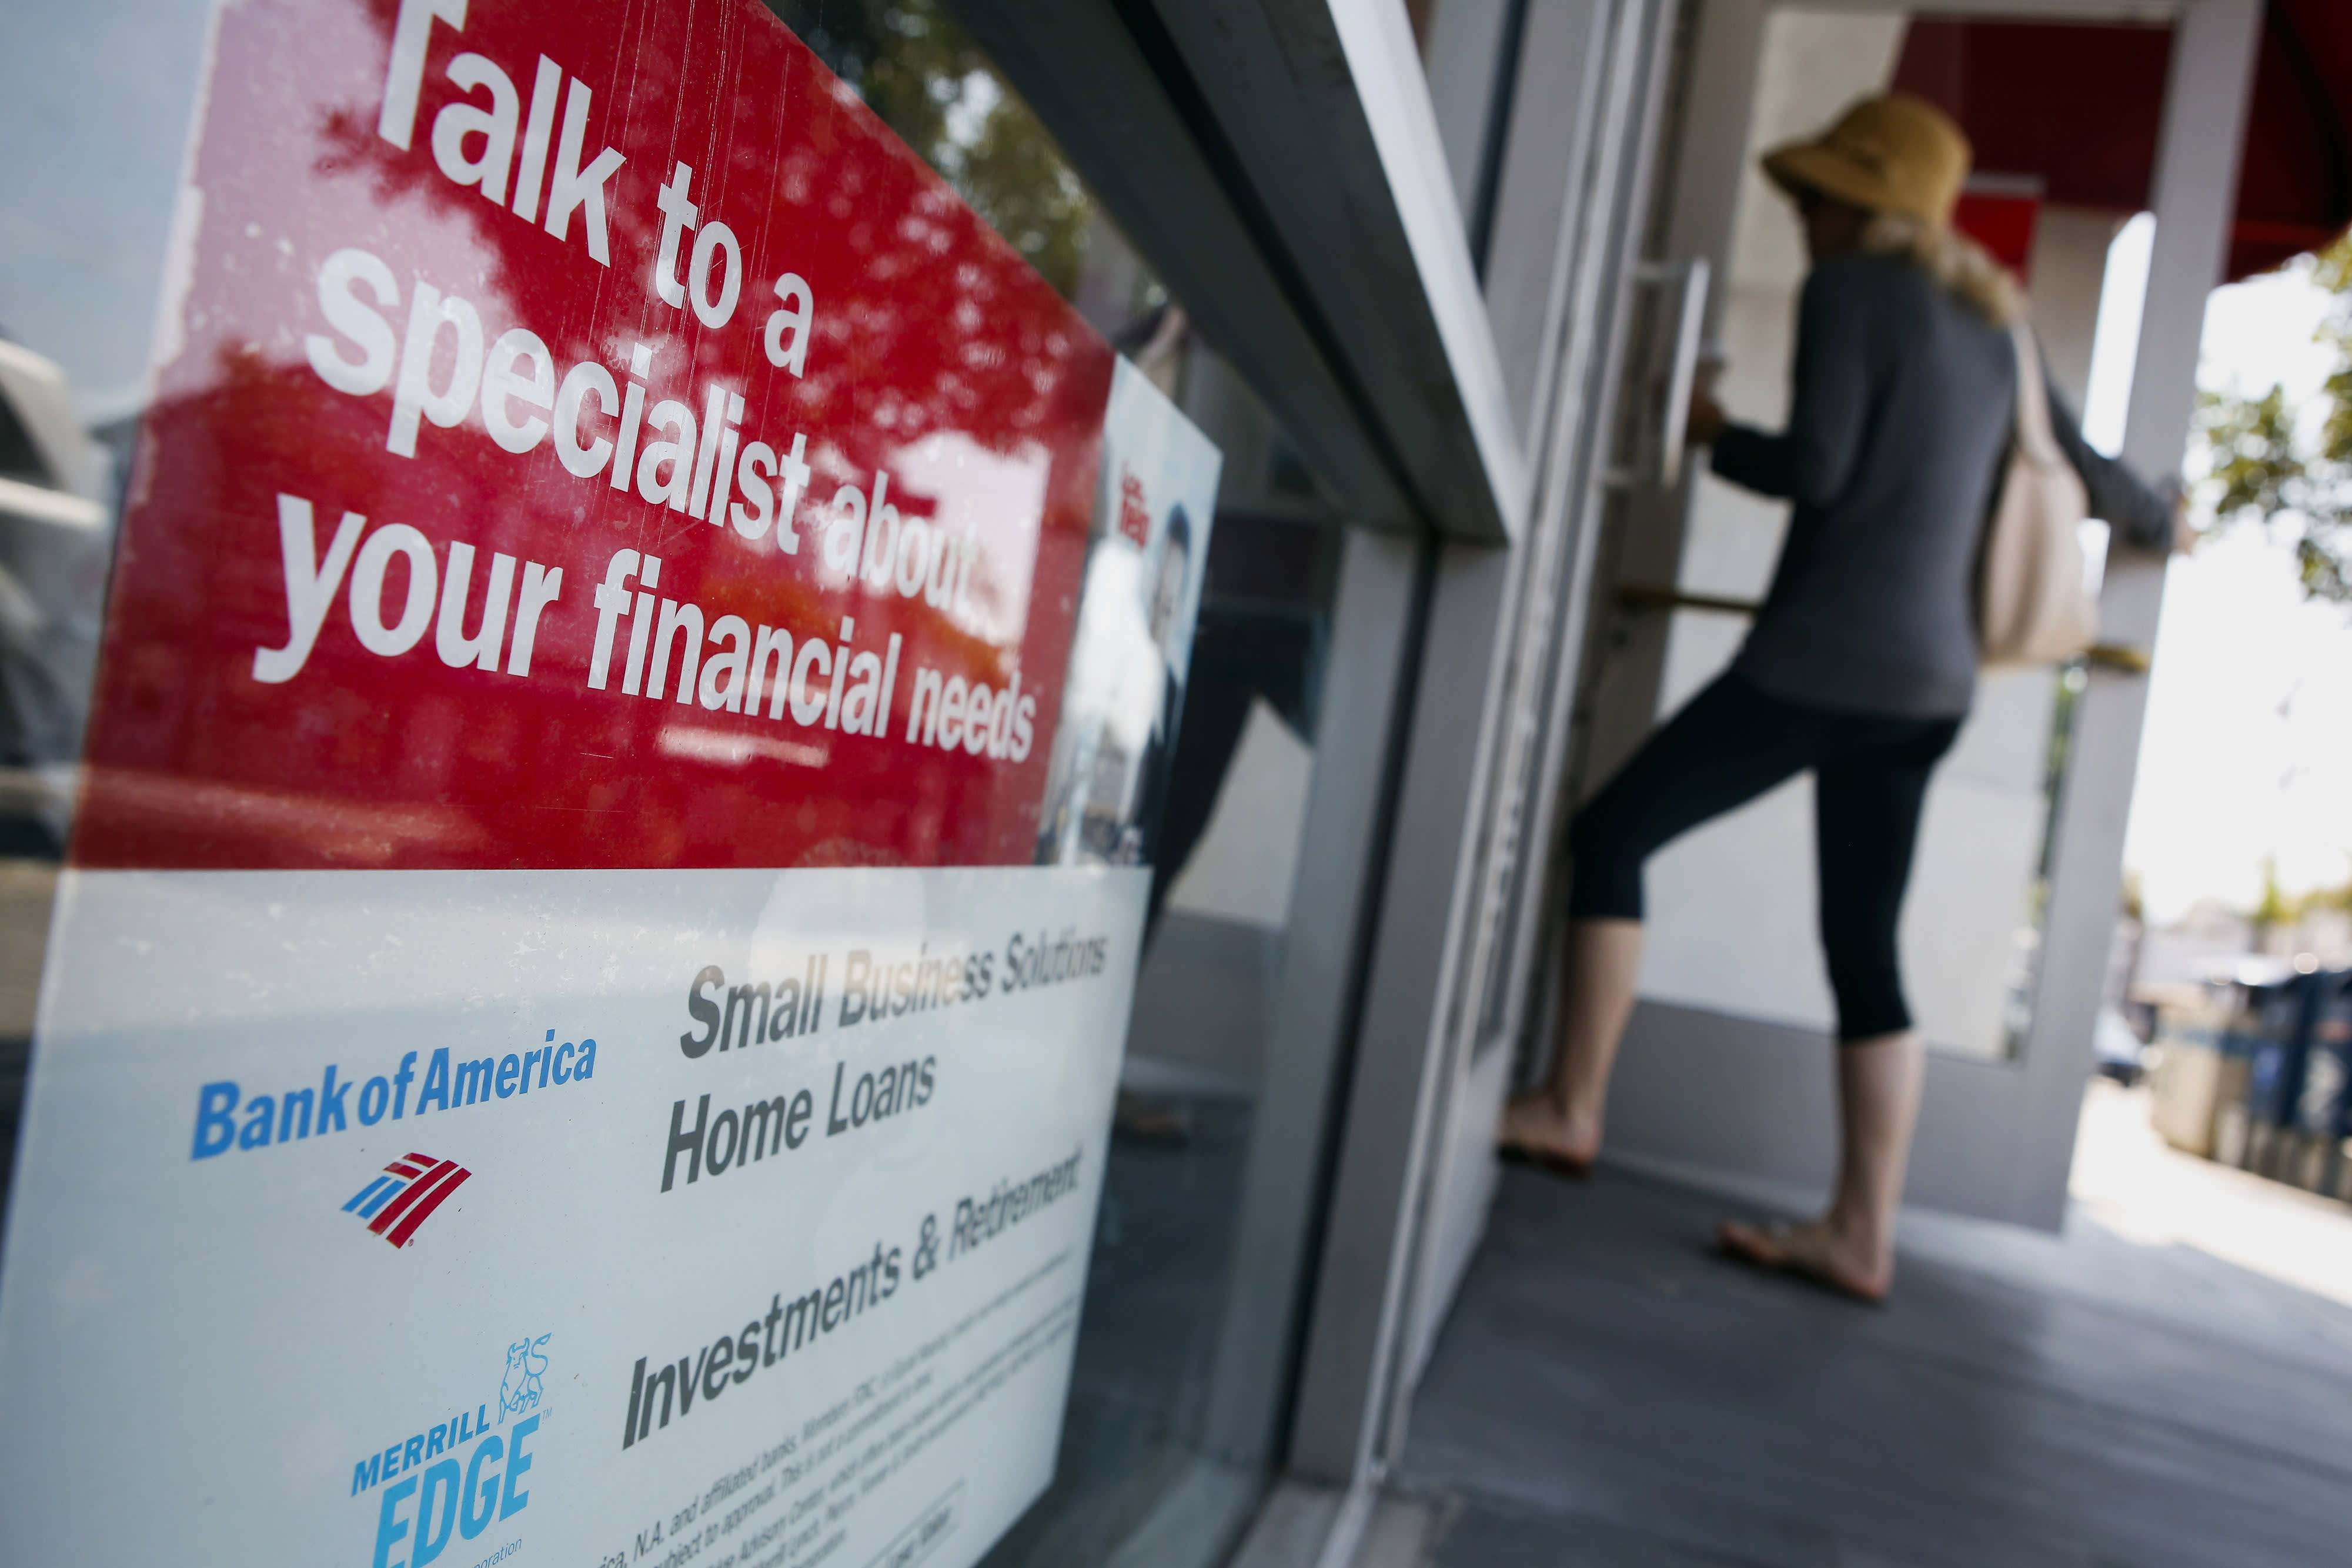 Mortgage refinances spike 12% on a big rate drop, but homebuyers pull back again